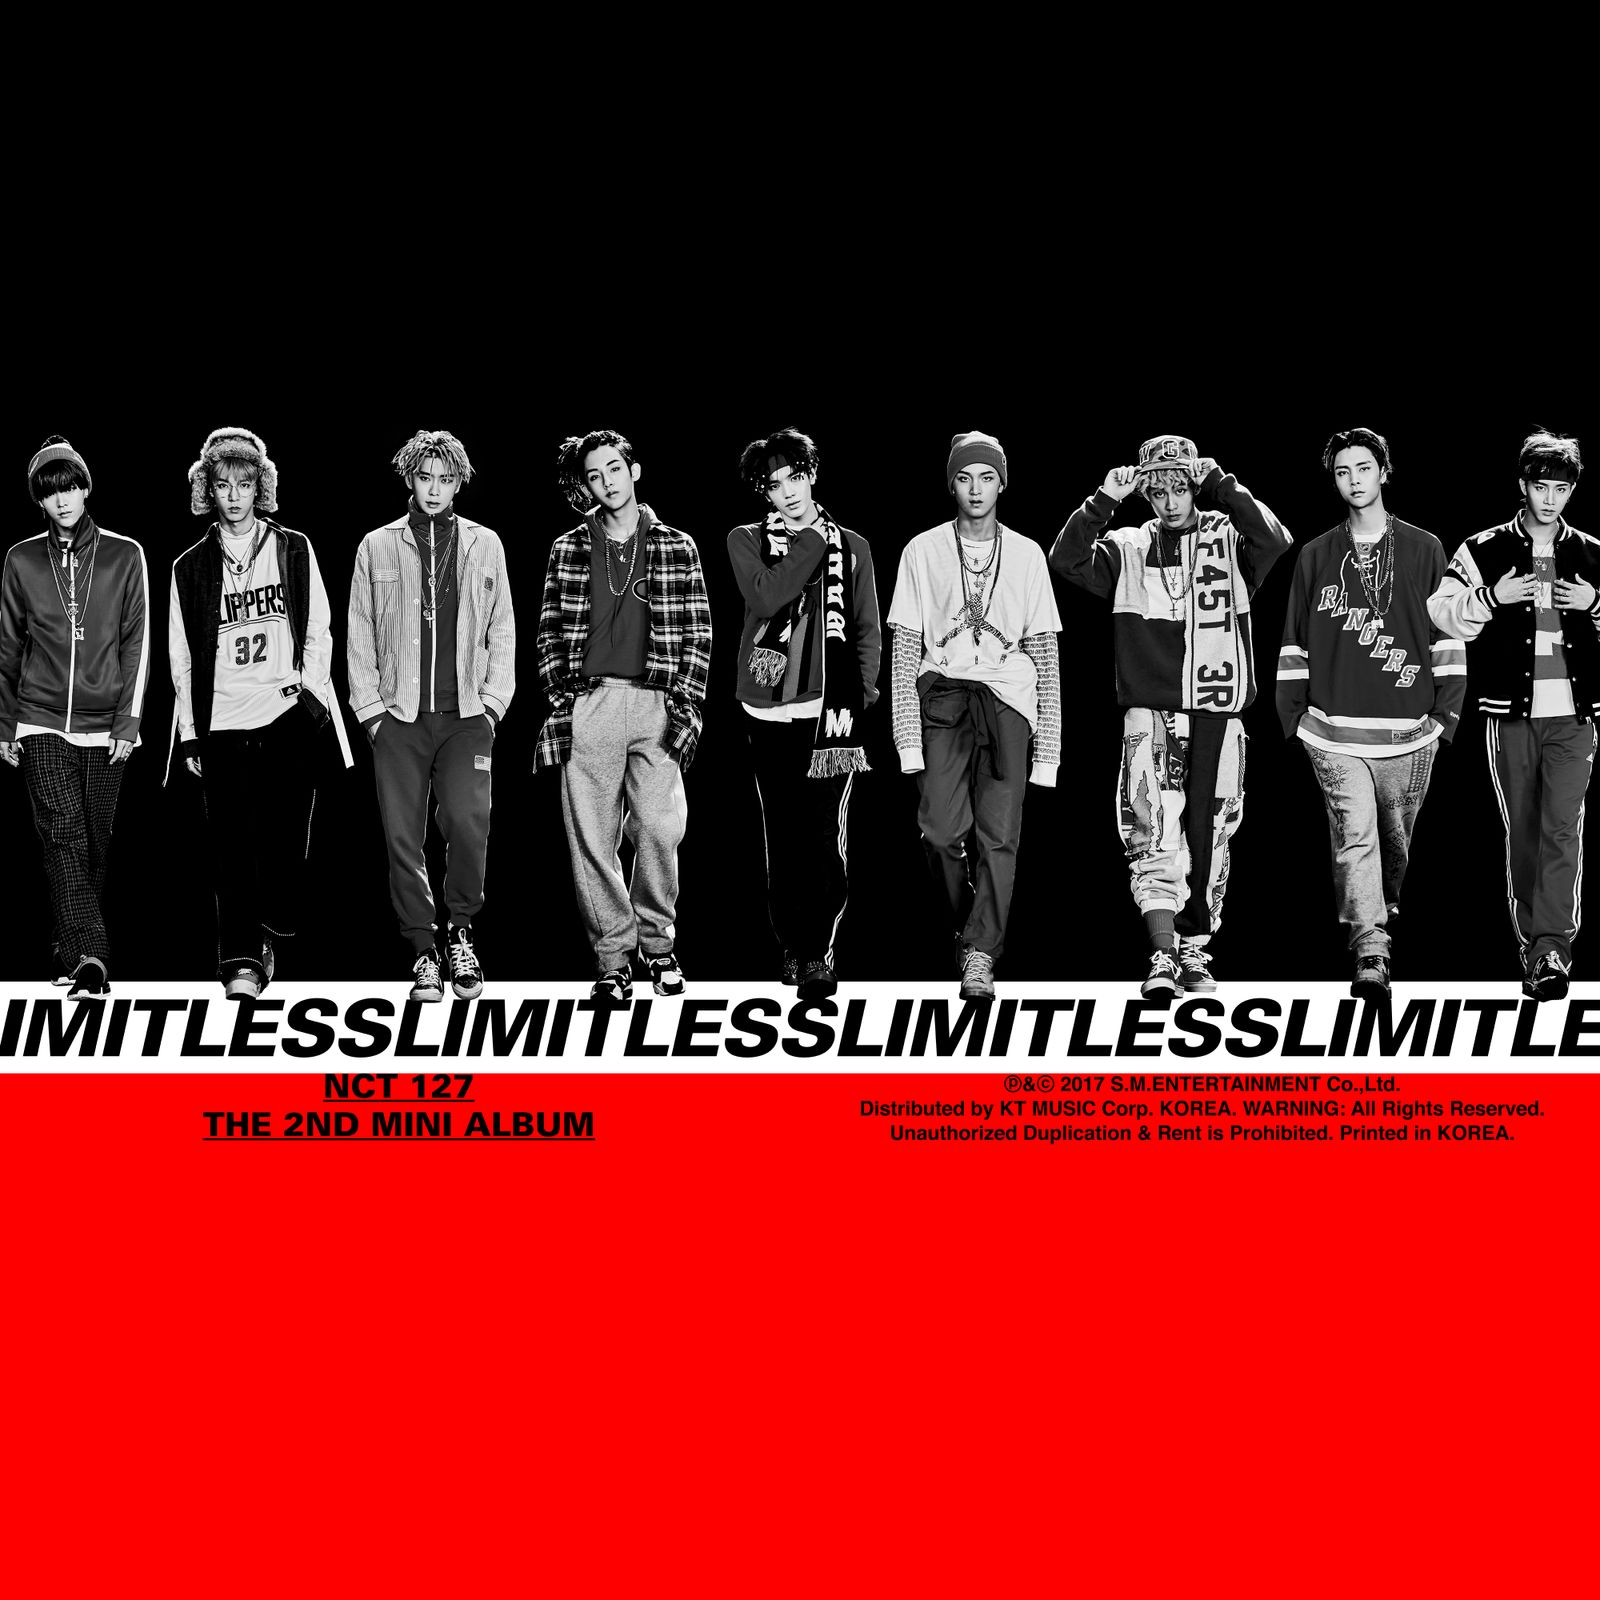 NCT127 - Limitless